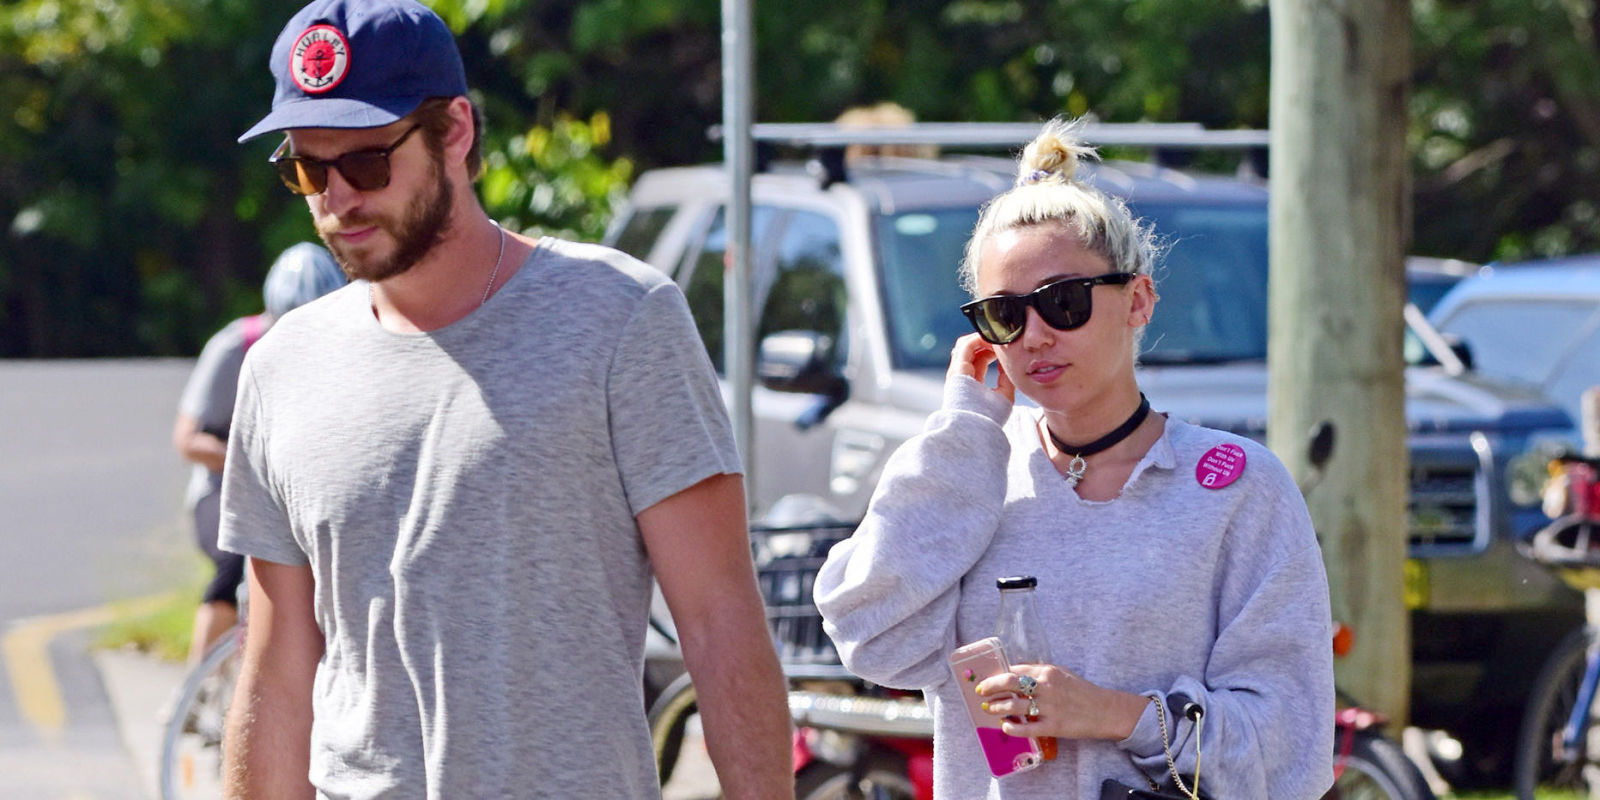 Miley Cyrus and Liam Hemsworth just made their reunion Instagram official